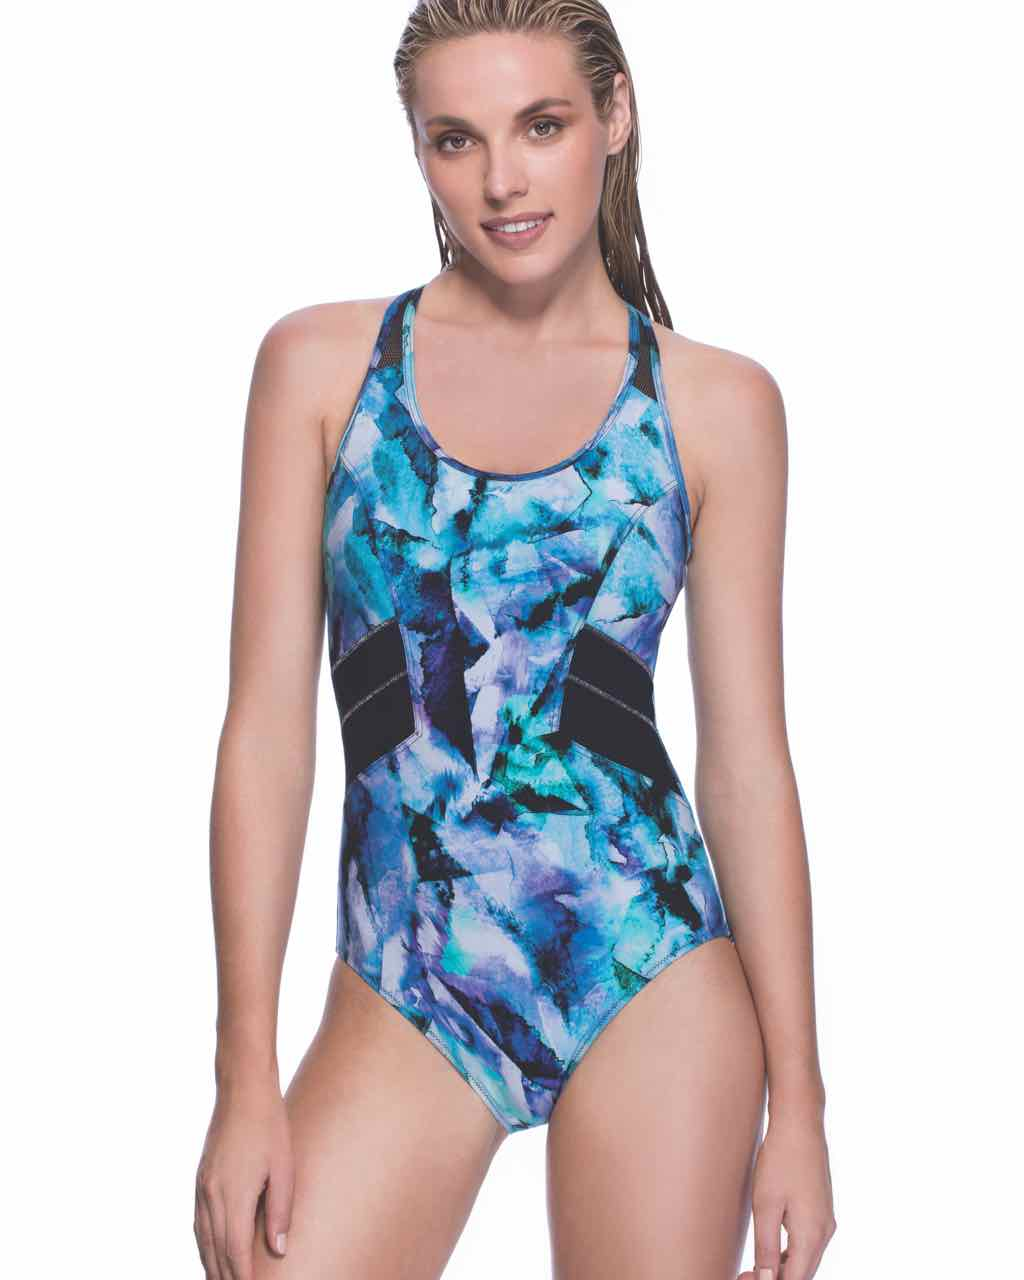 daec5bd047d Profile Gottex Sport Swimsuit Moonstone Blue I Buy Online | USA CANADA